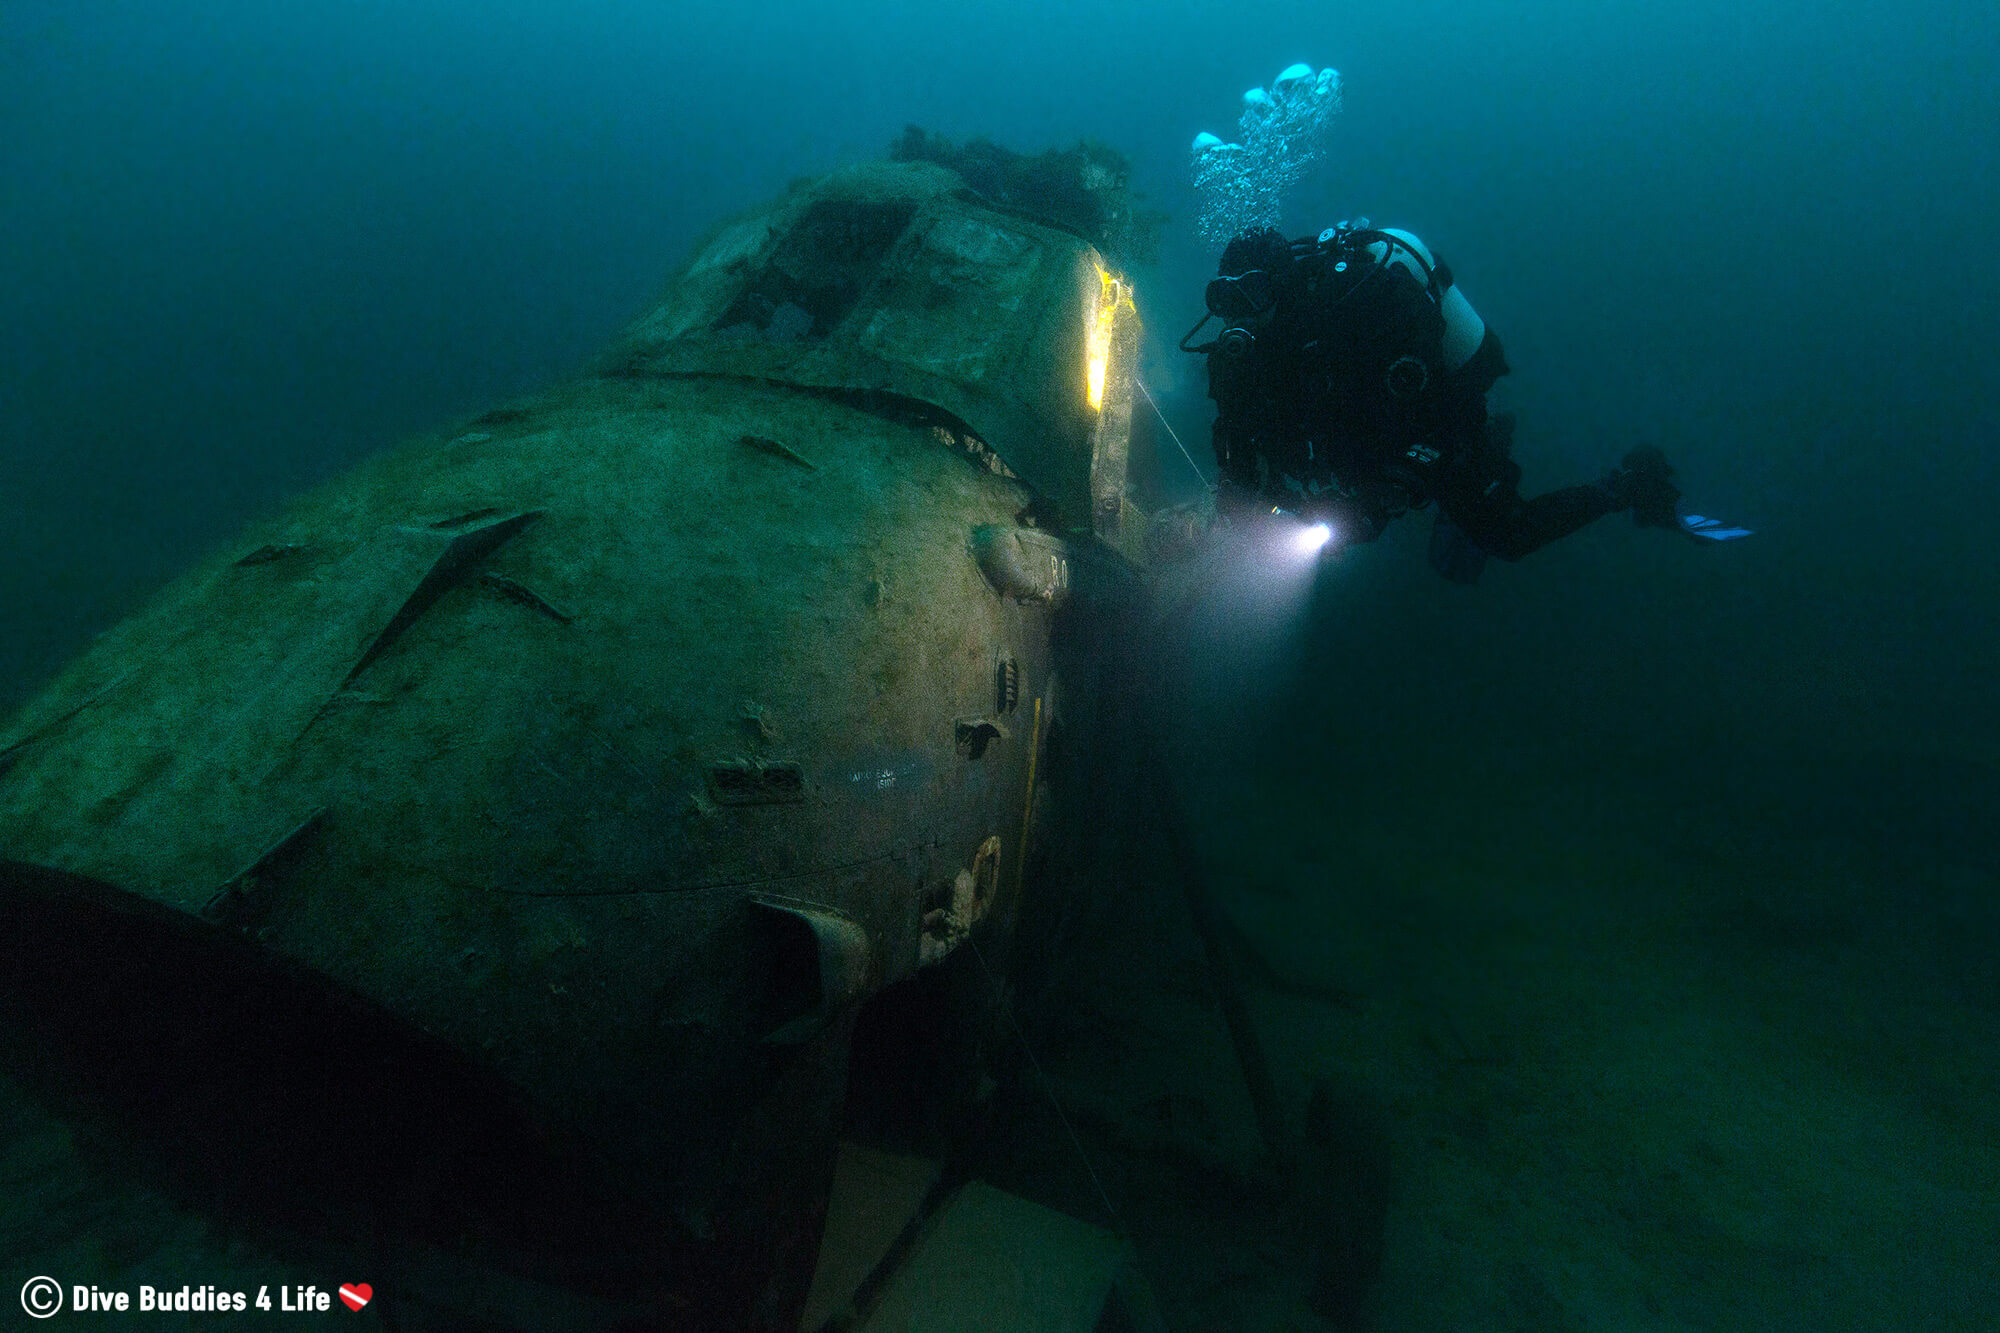 Joey Diving With A Sunken Helicopter In The Chepstow Quarry In Whales, UK, Europe